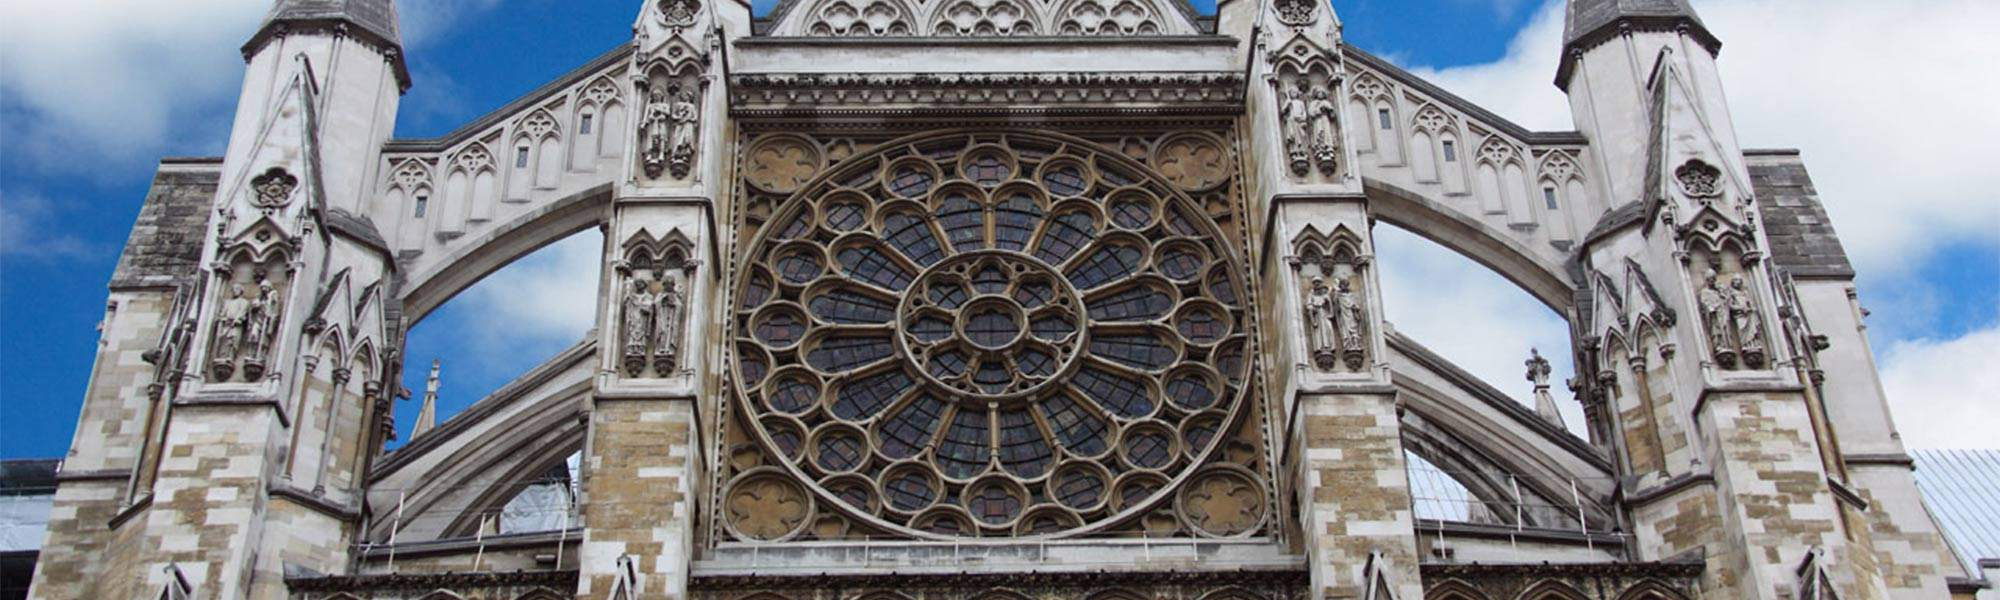 Little Bird Visit Westminster Abbey - Explore Over A Thousand Years of History!